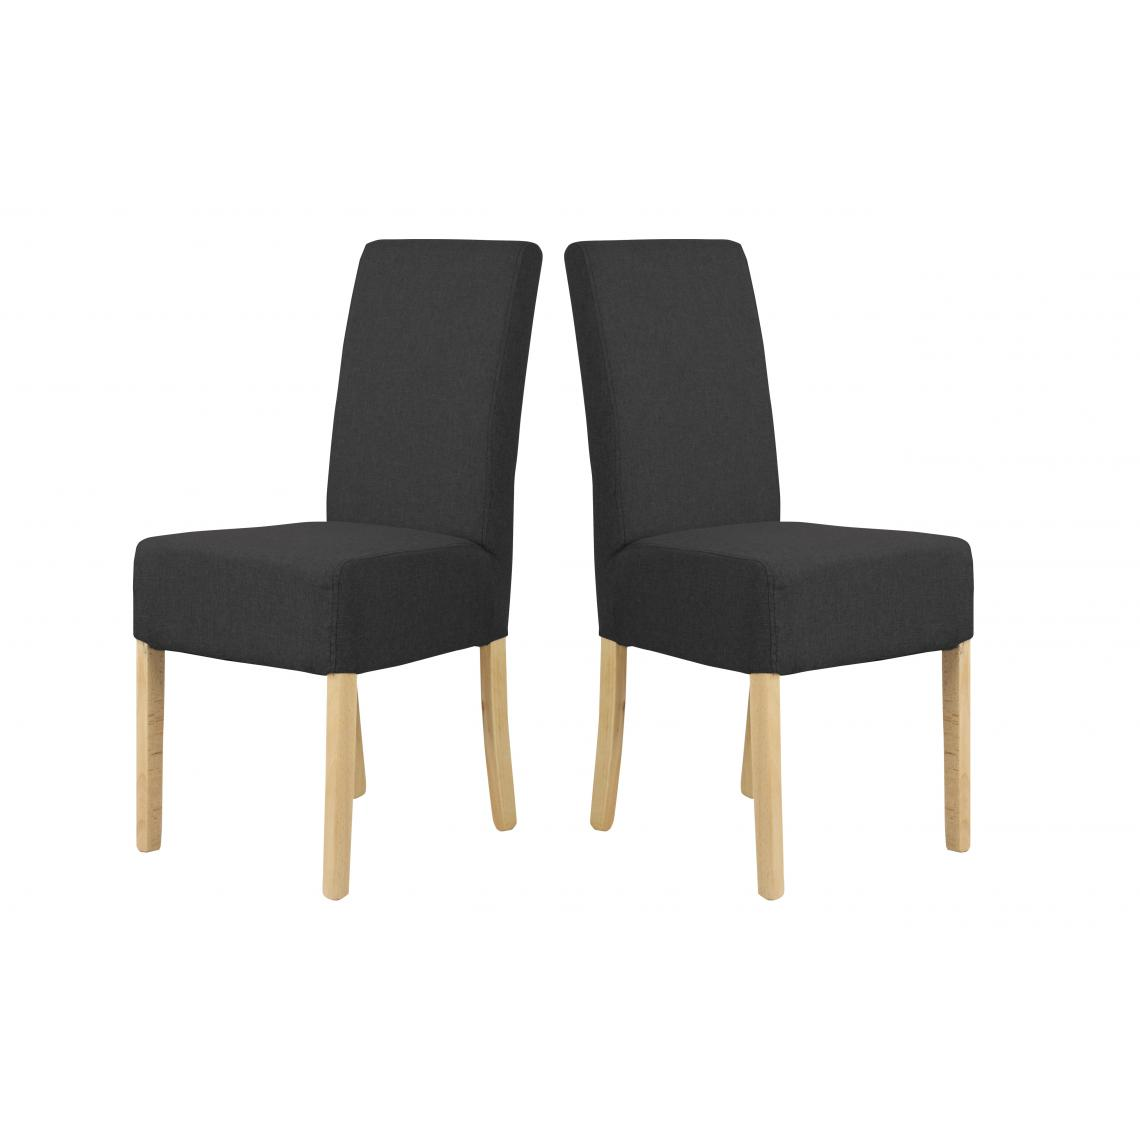 lot de 2 chaises dossiers hauts noir vino 3suisses. Black Bedroom Furniture Sets. Home Design Ideas